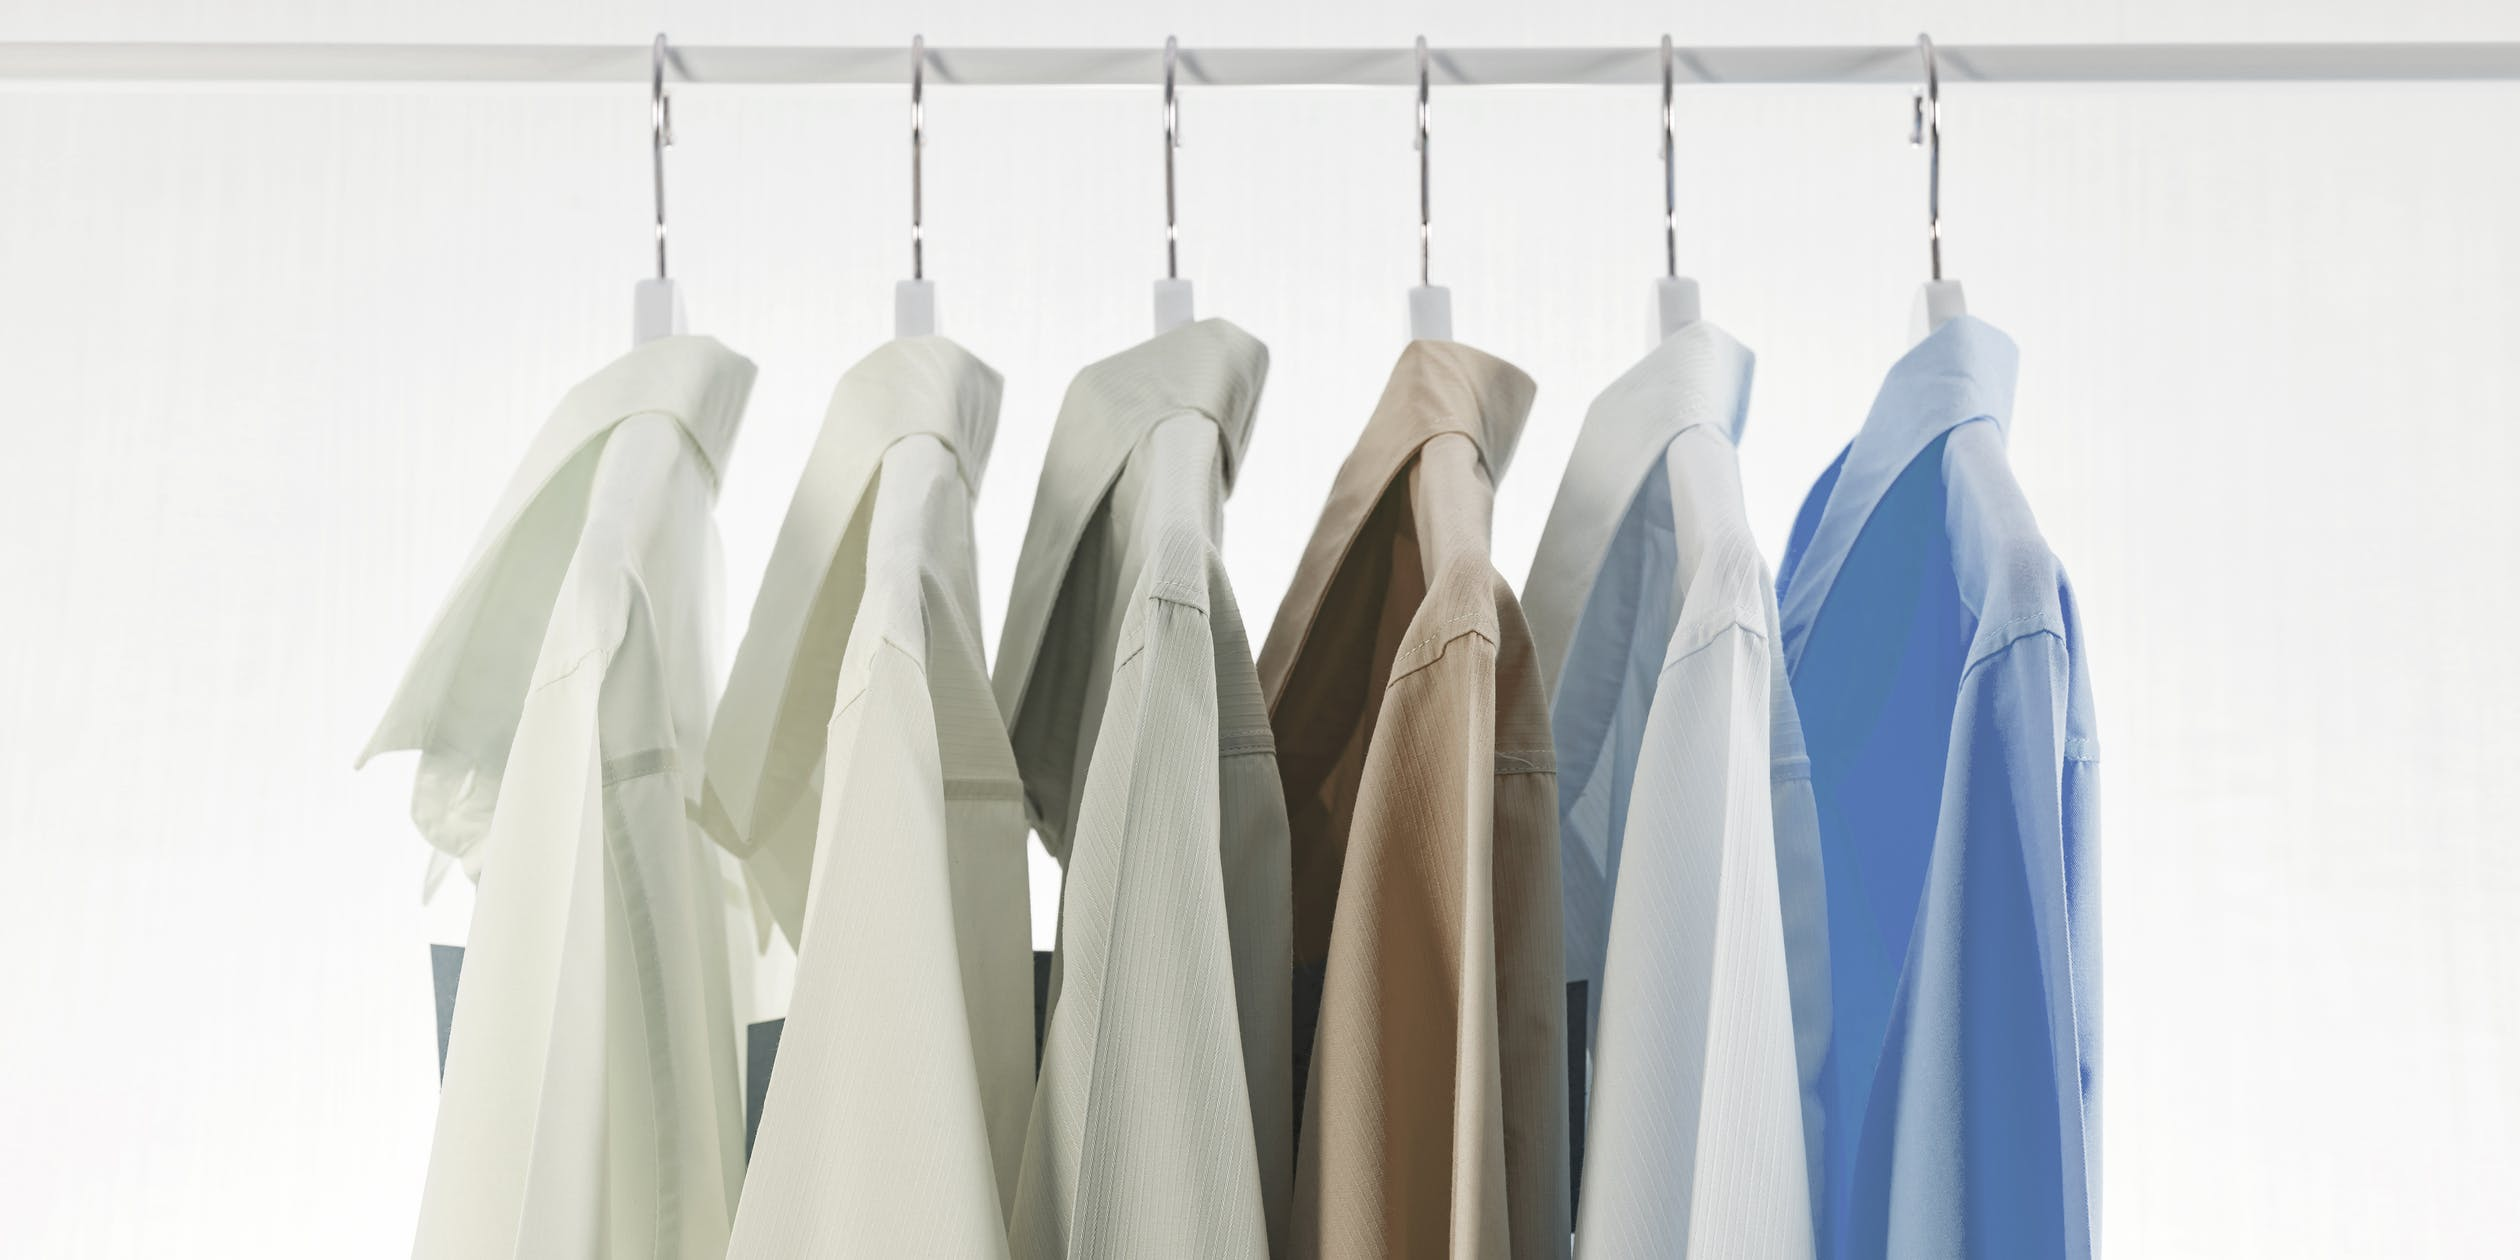 omnichannel challenges for fashion - product variants